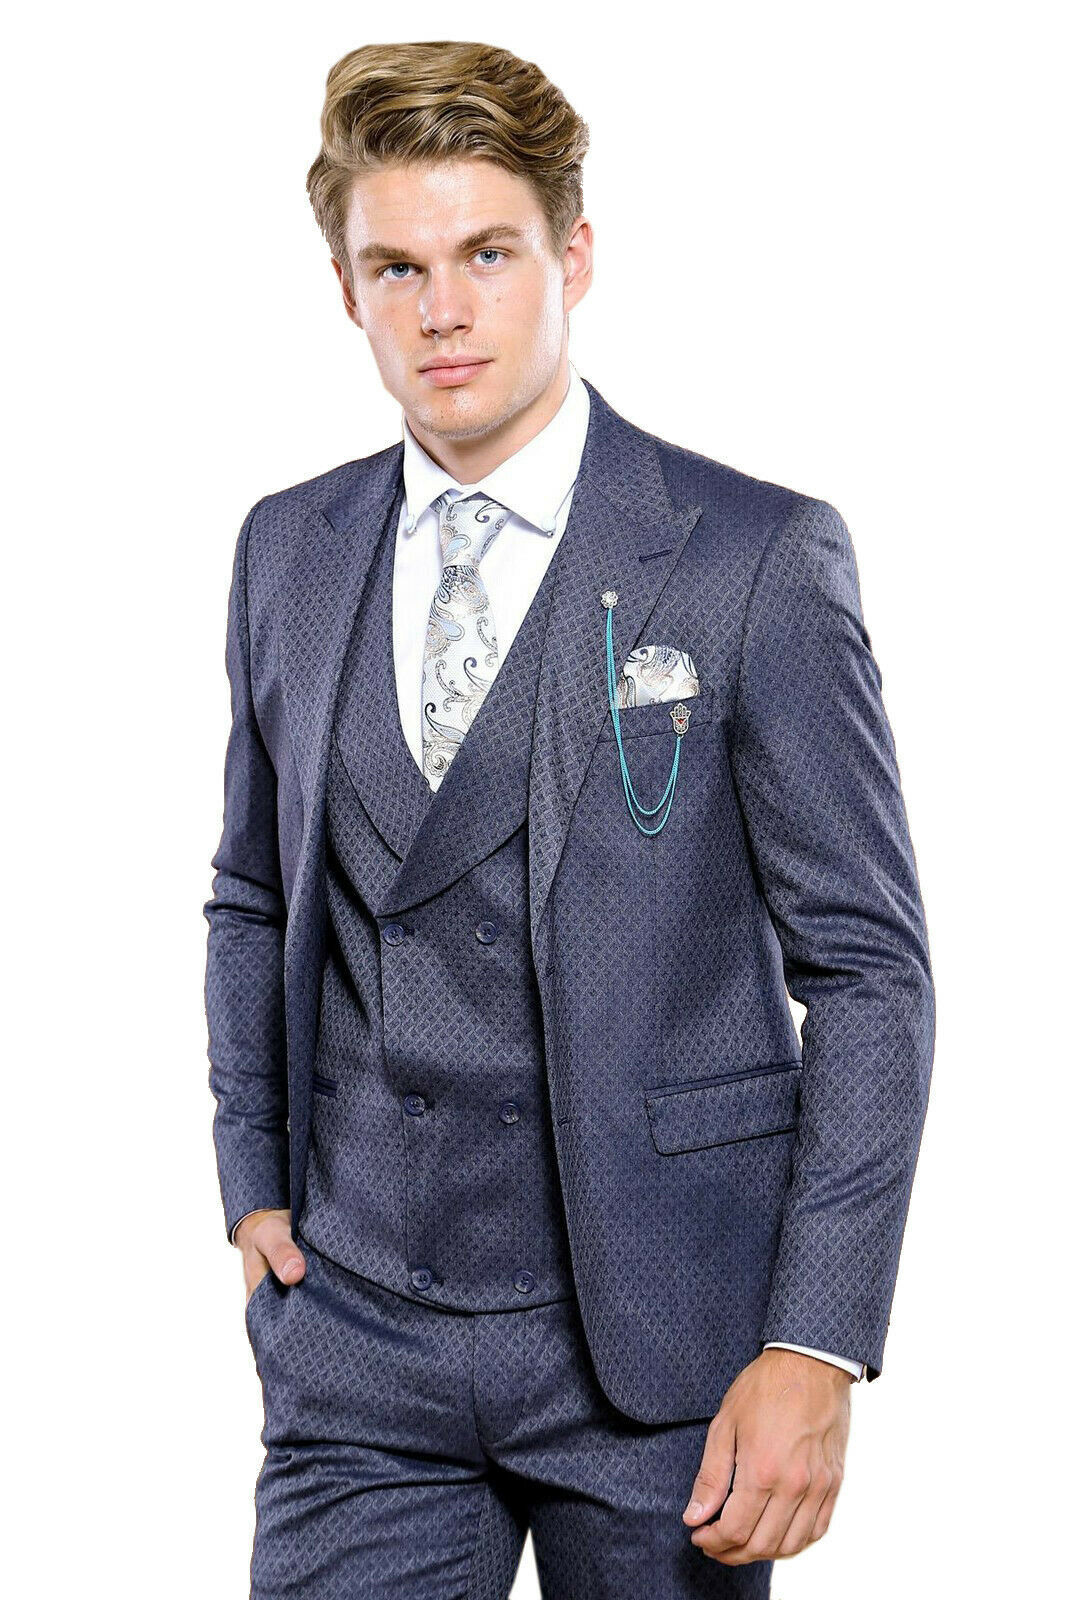 Primary image for Men Three Piece Vested Suit WESSI by J.VALINTIN Extra Slim Fit JV17 Navy Blue